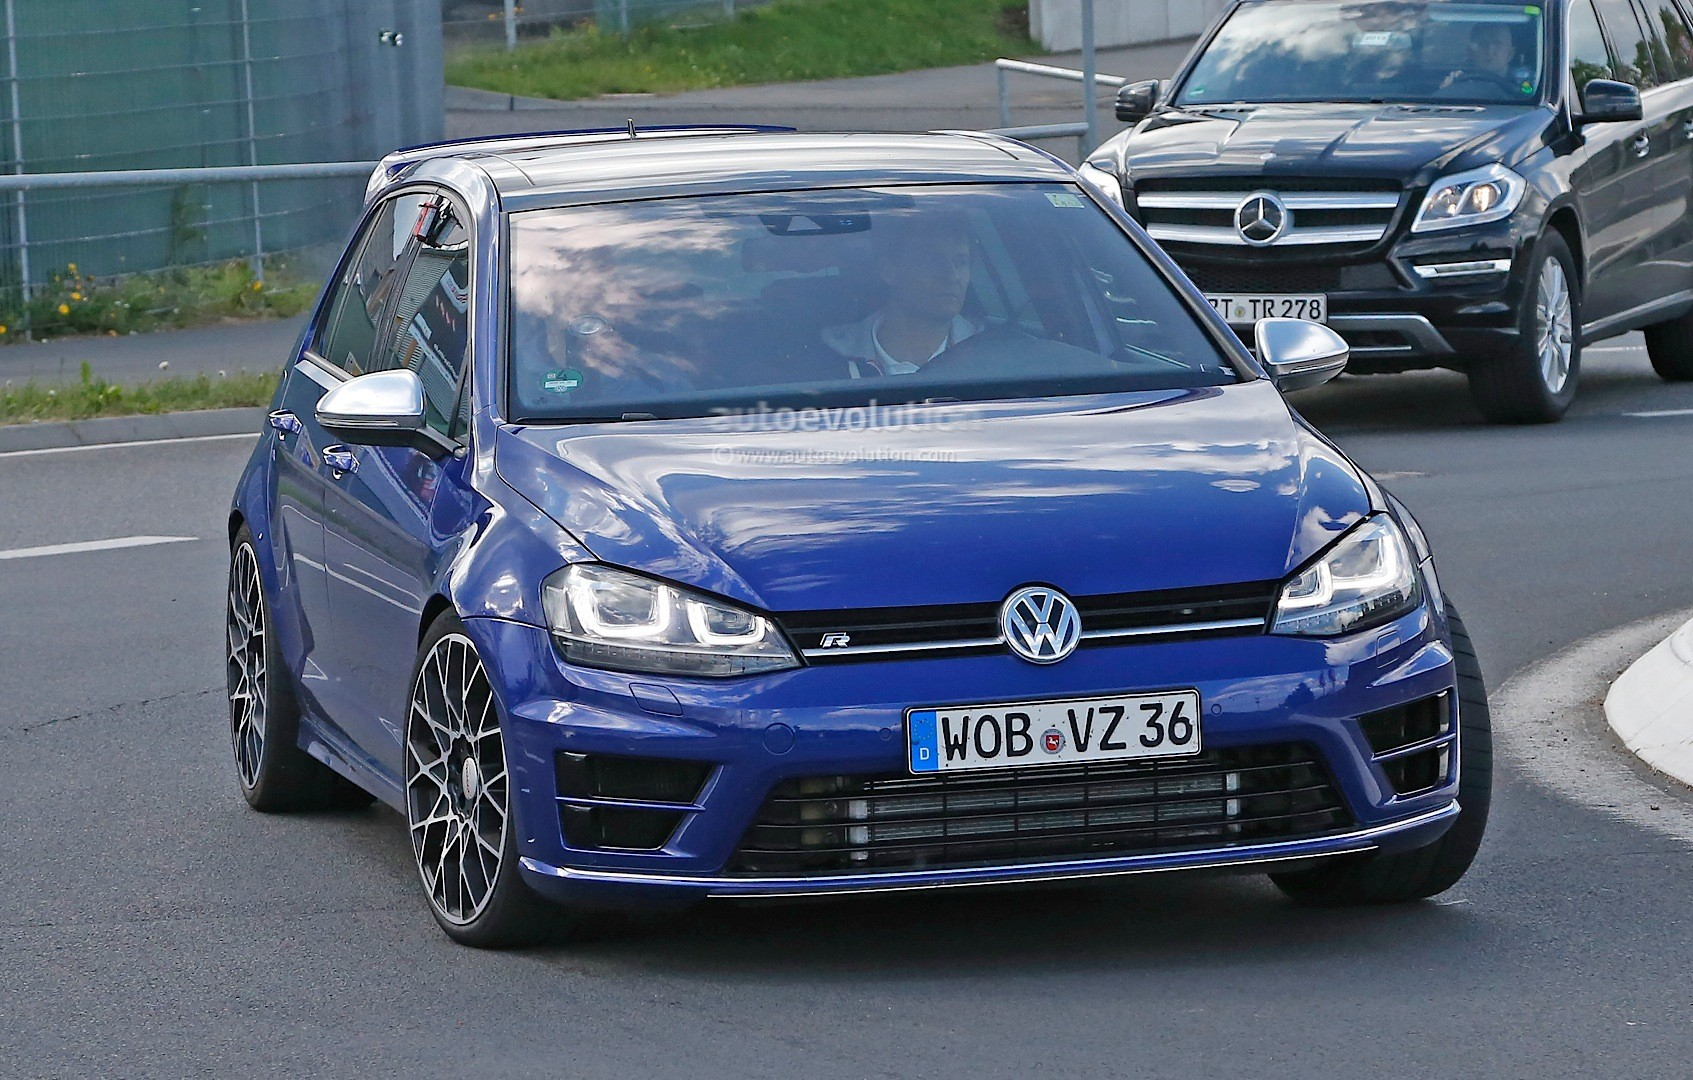 2016 Volkswagen Golf R400 First Spy Photos Show Hyper-Hatch with AWD - autoevolution